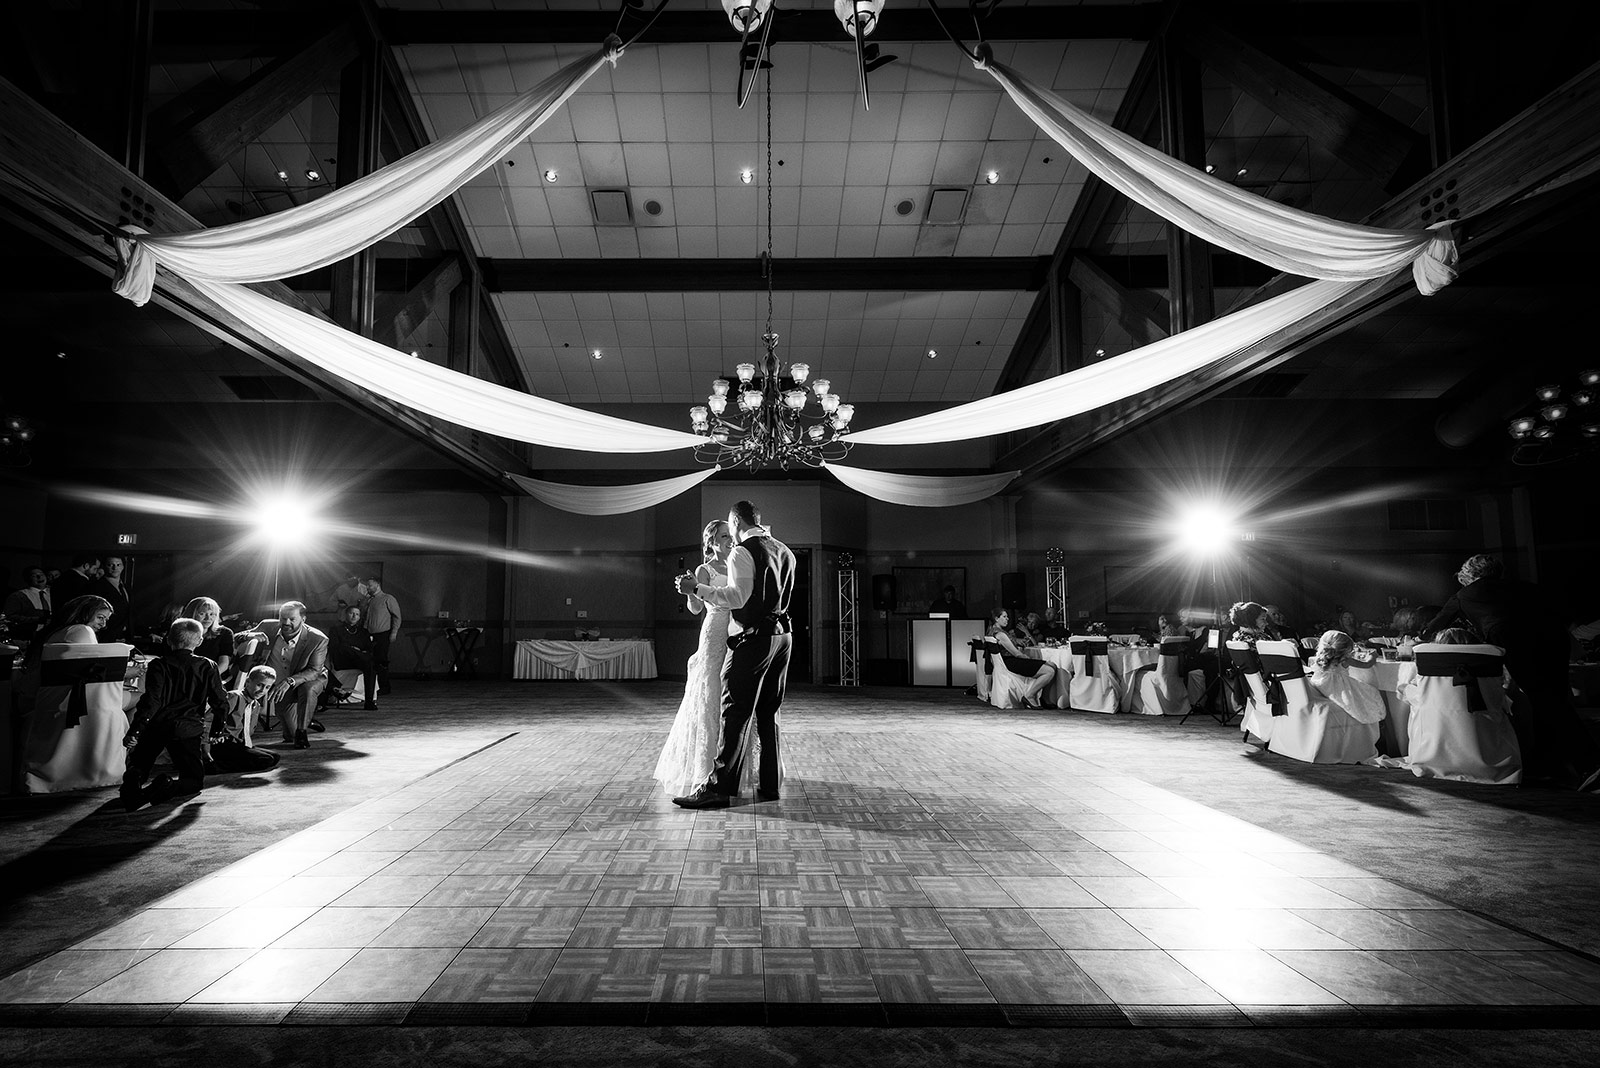 Bride Groom First Dance Eagle Ridge Resort Artistic Black White Photo